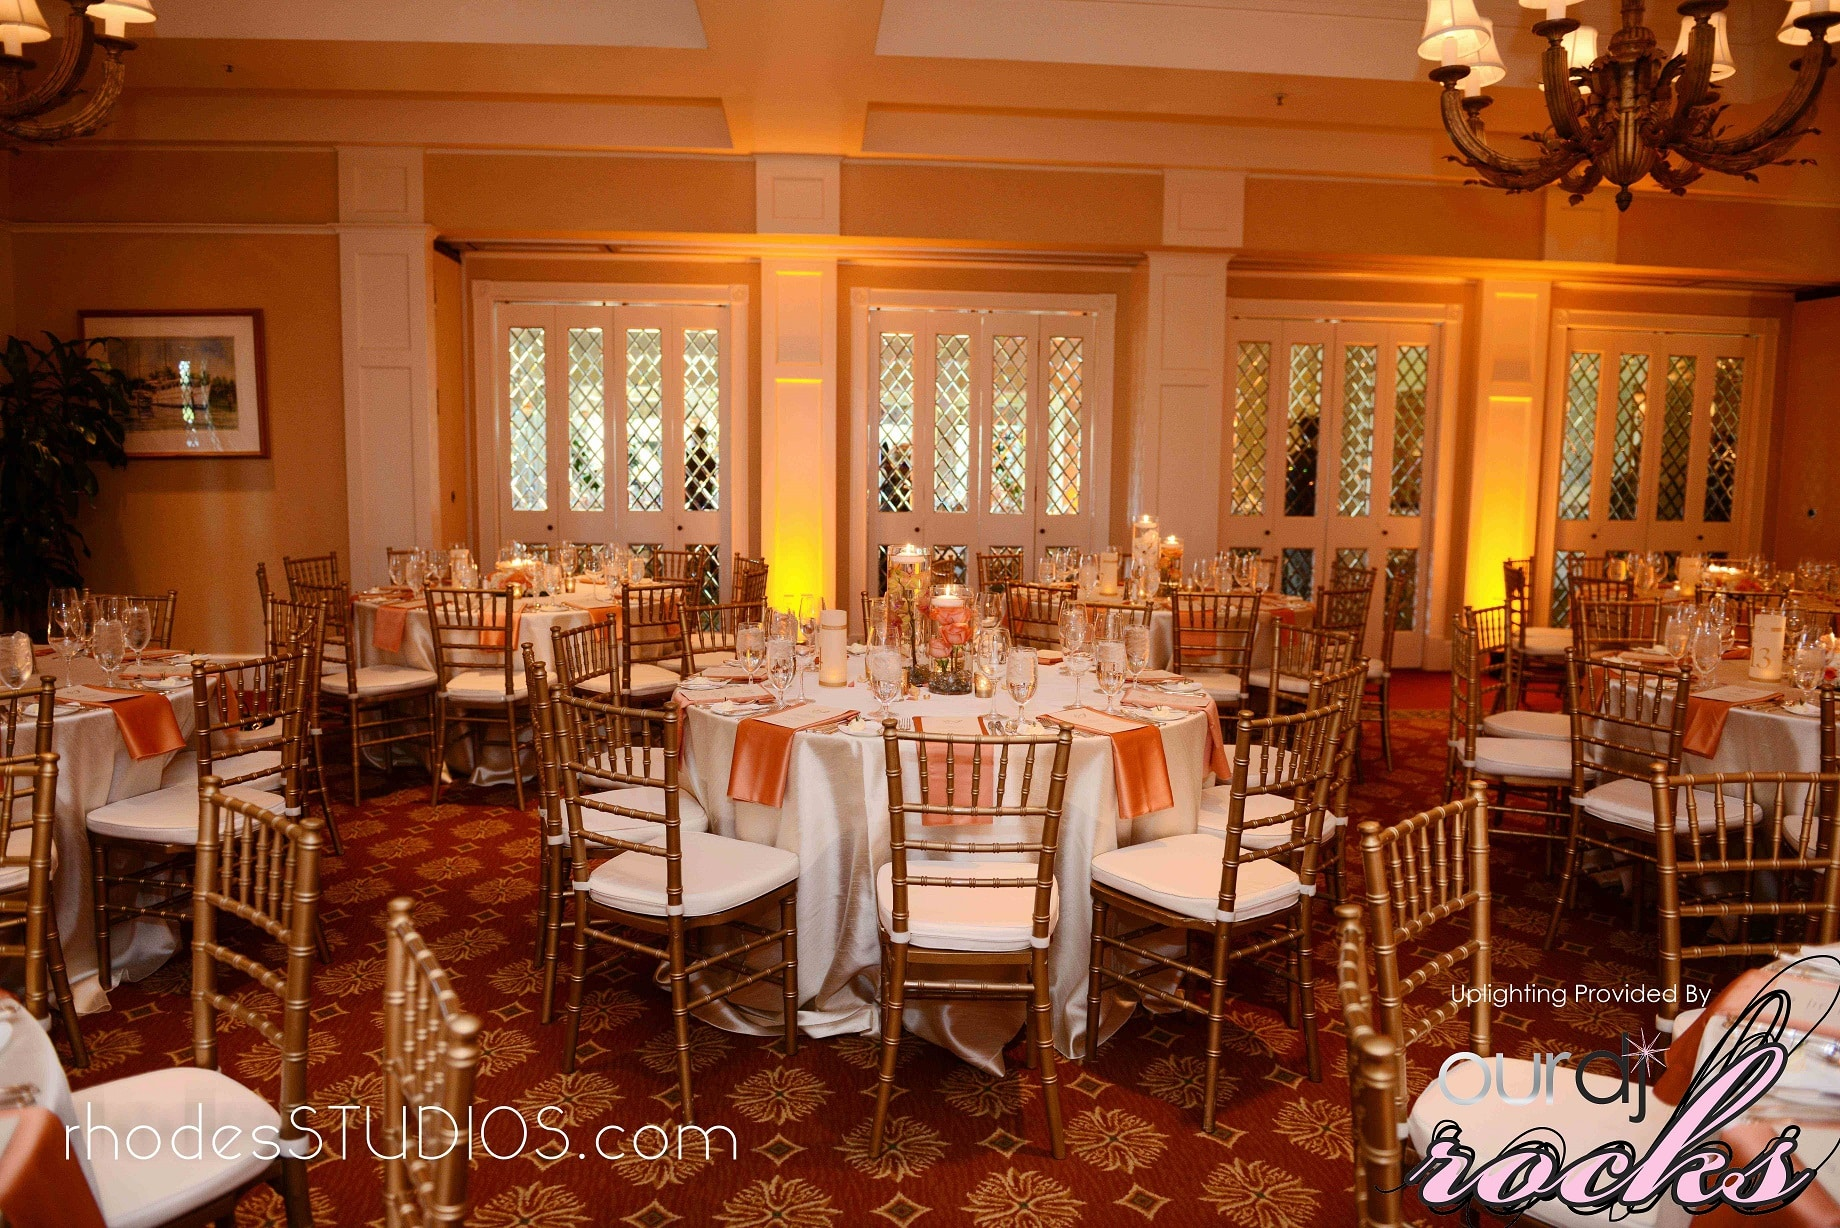 Amber UpLighting at Interlachen Country Club